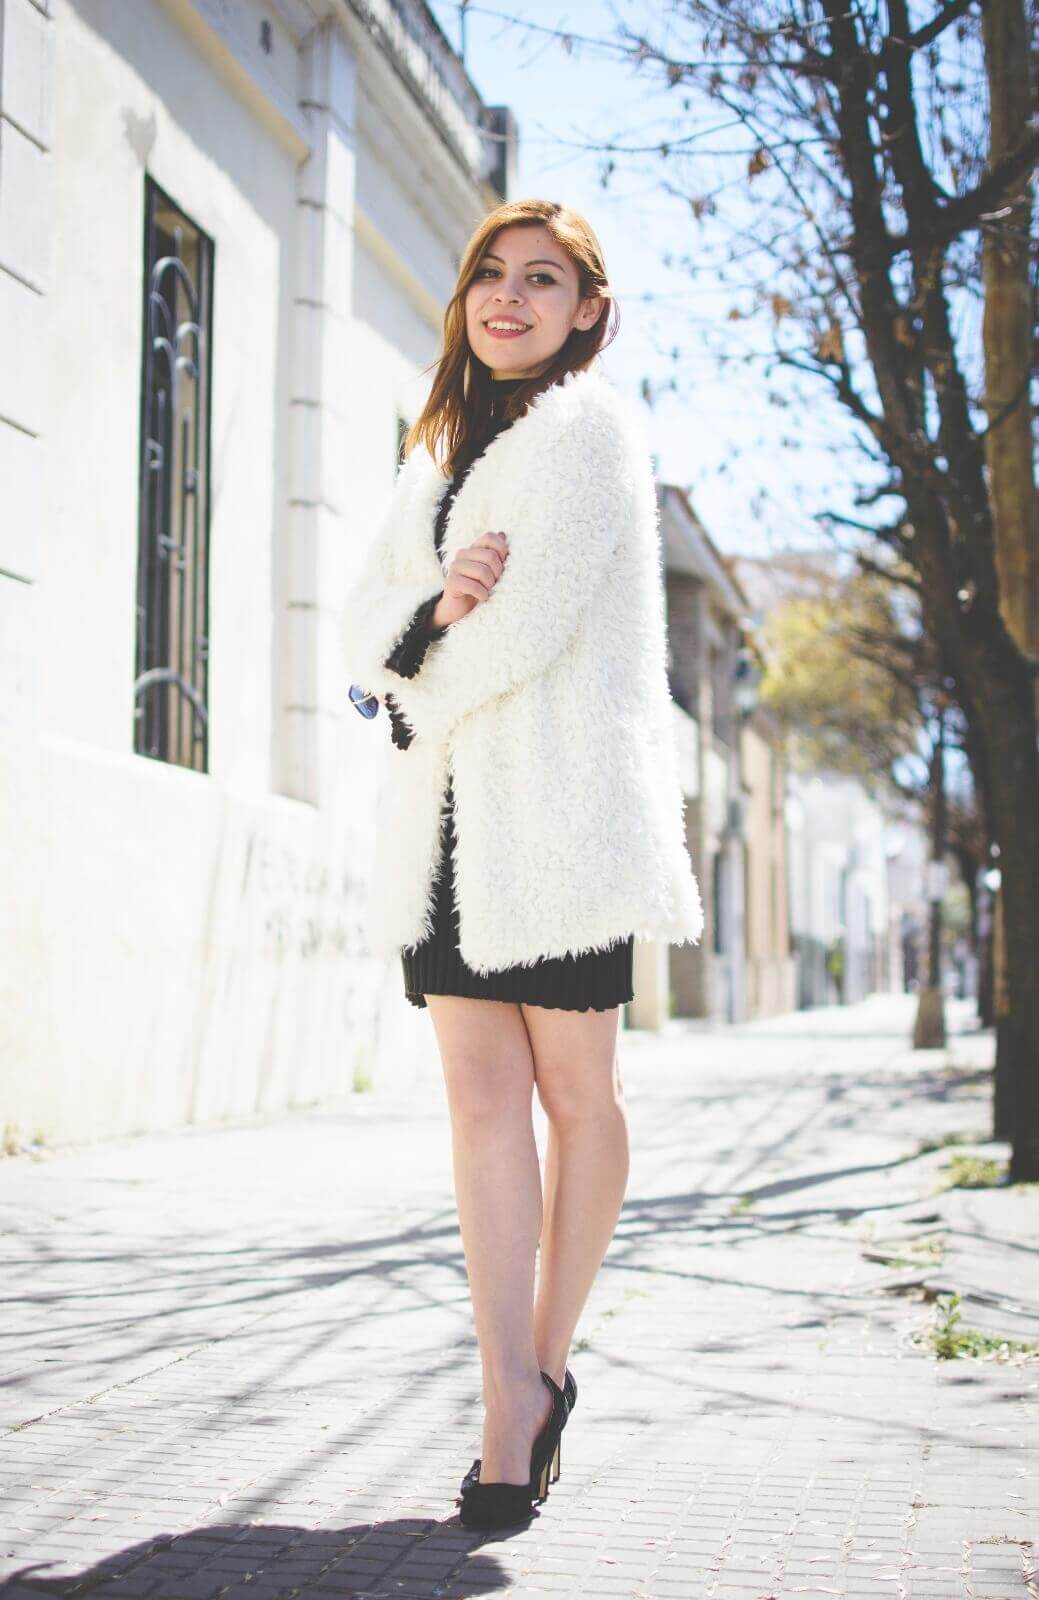 white-fluffy-coat-newchic-fall-little-black-dress-zaful-shoes-gamiss-sunglasses-deborah-ferrero-style-by-deb02